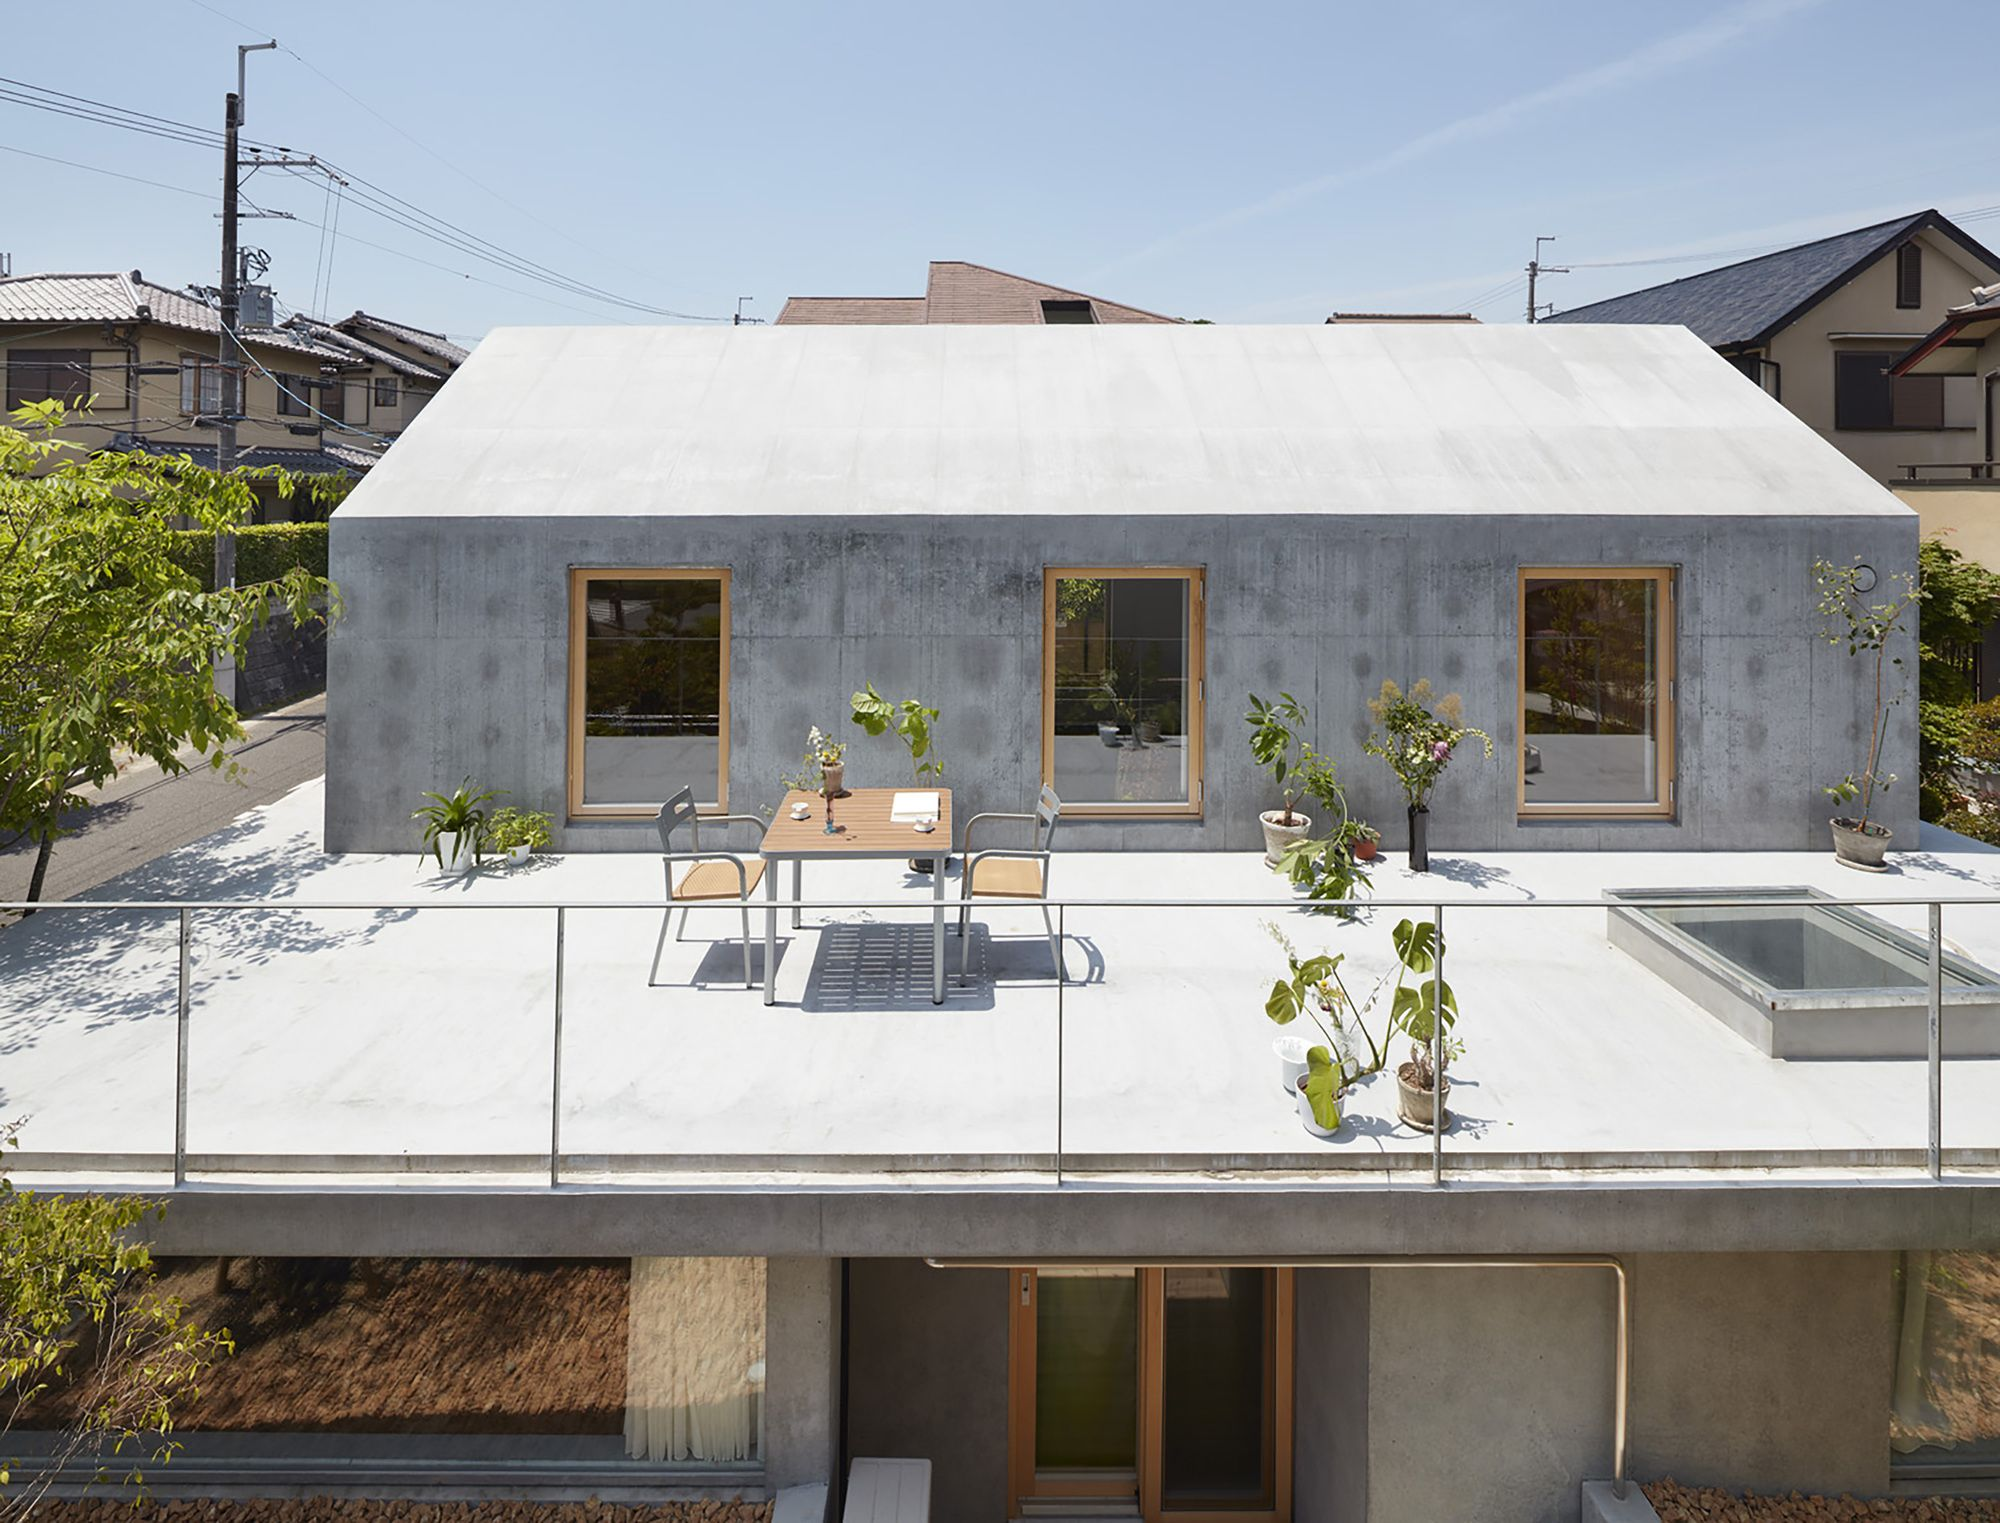 Floating Hut Tomohiro Hata Architect And Associates 建築 住宅